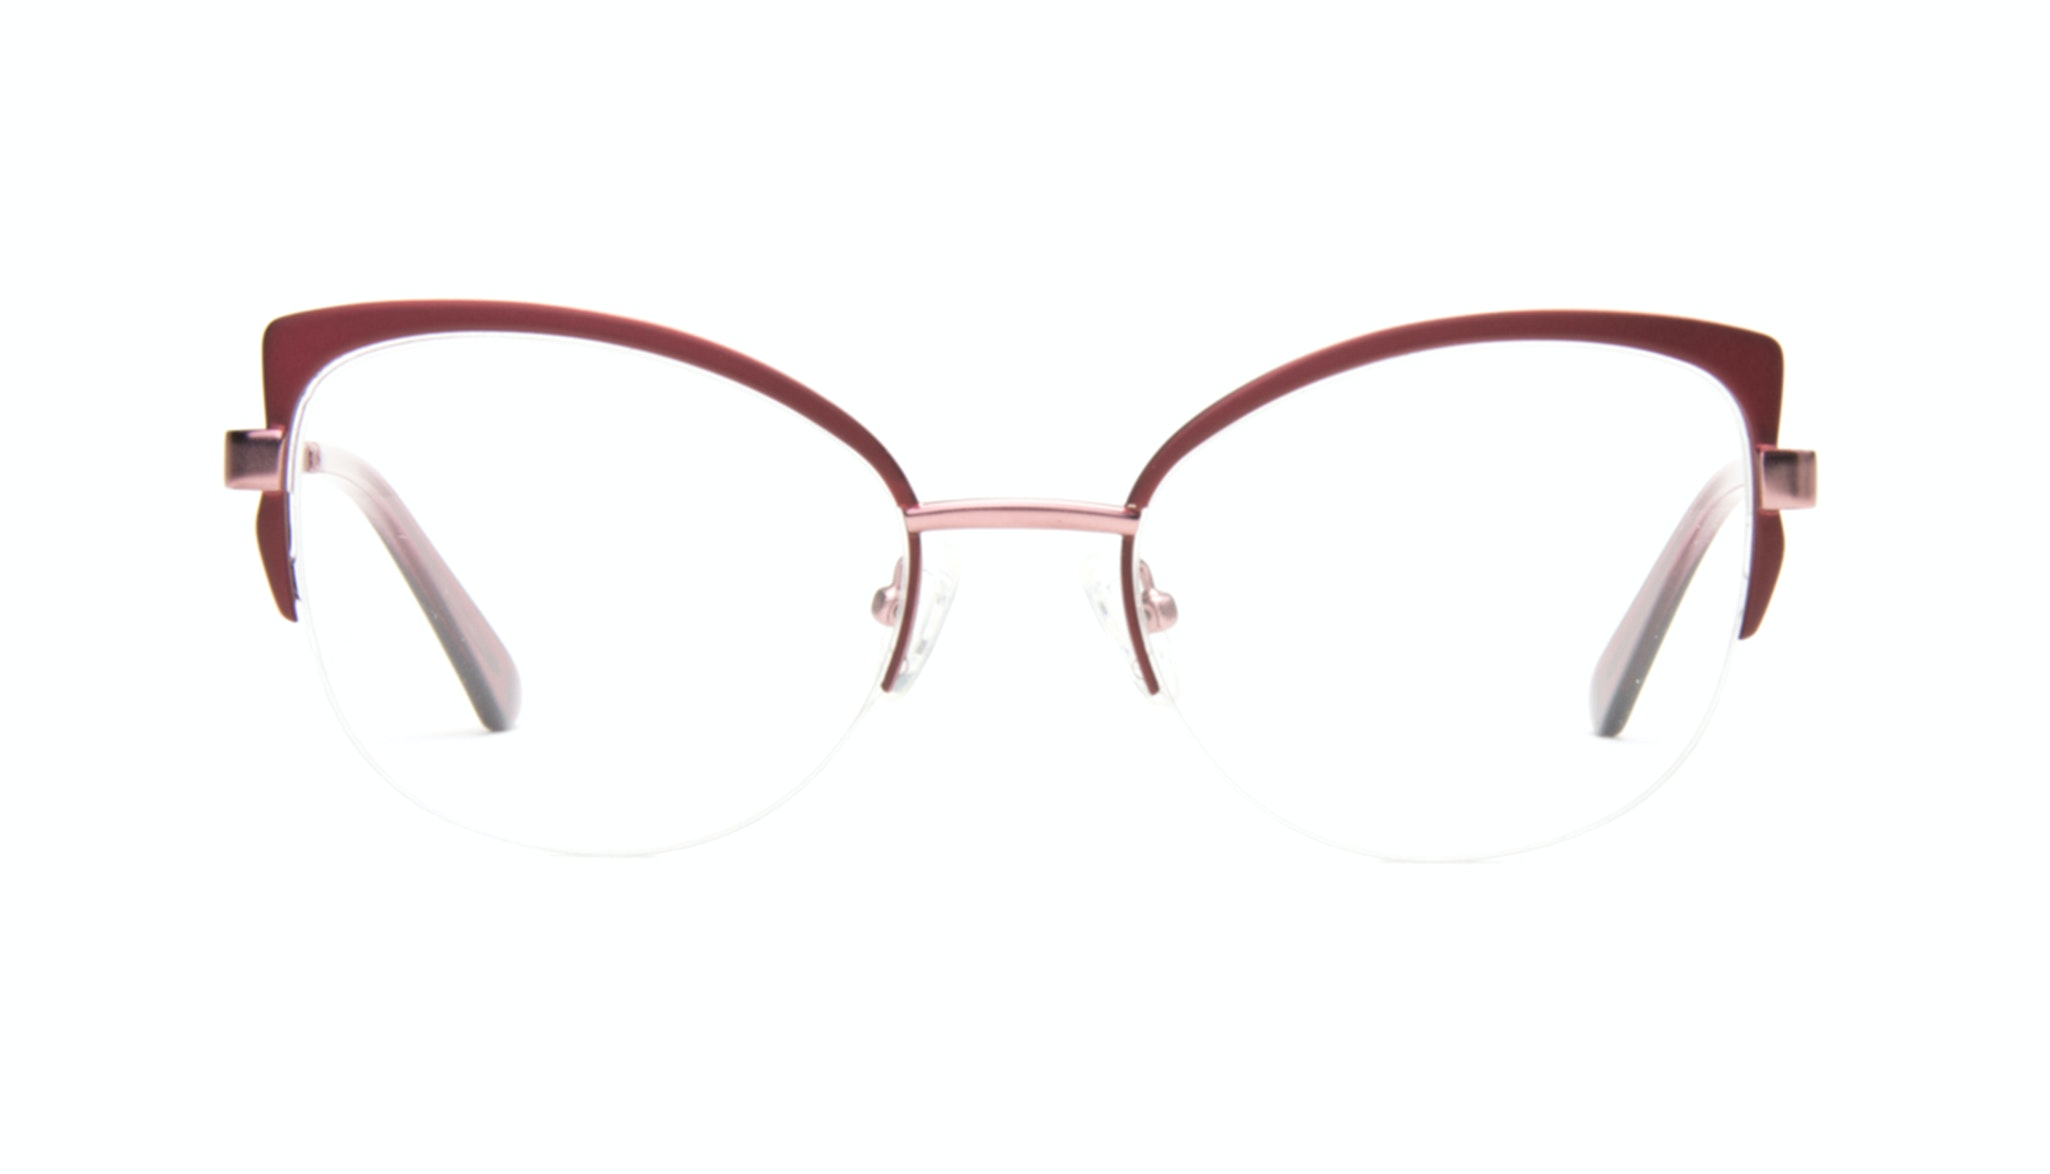 Affordable Fashion Glasses Cat Eye Eyeglasses Women Adore Cranberry Front